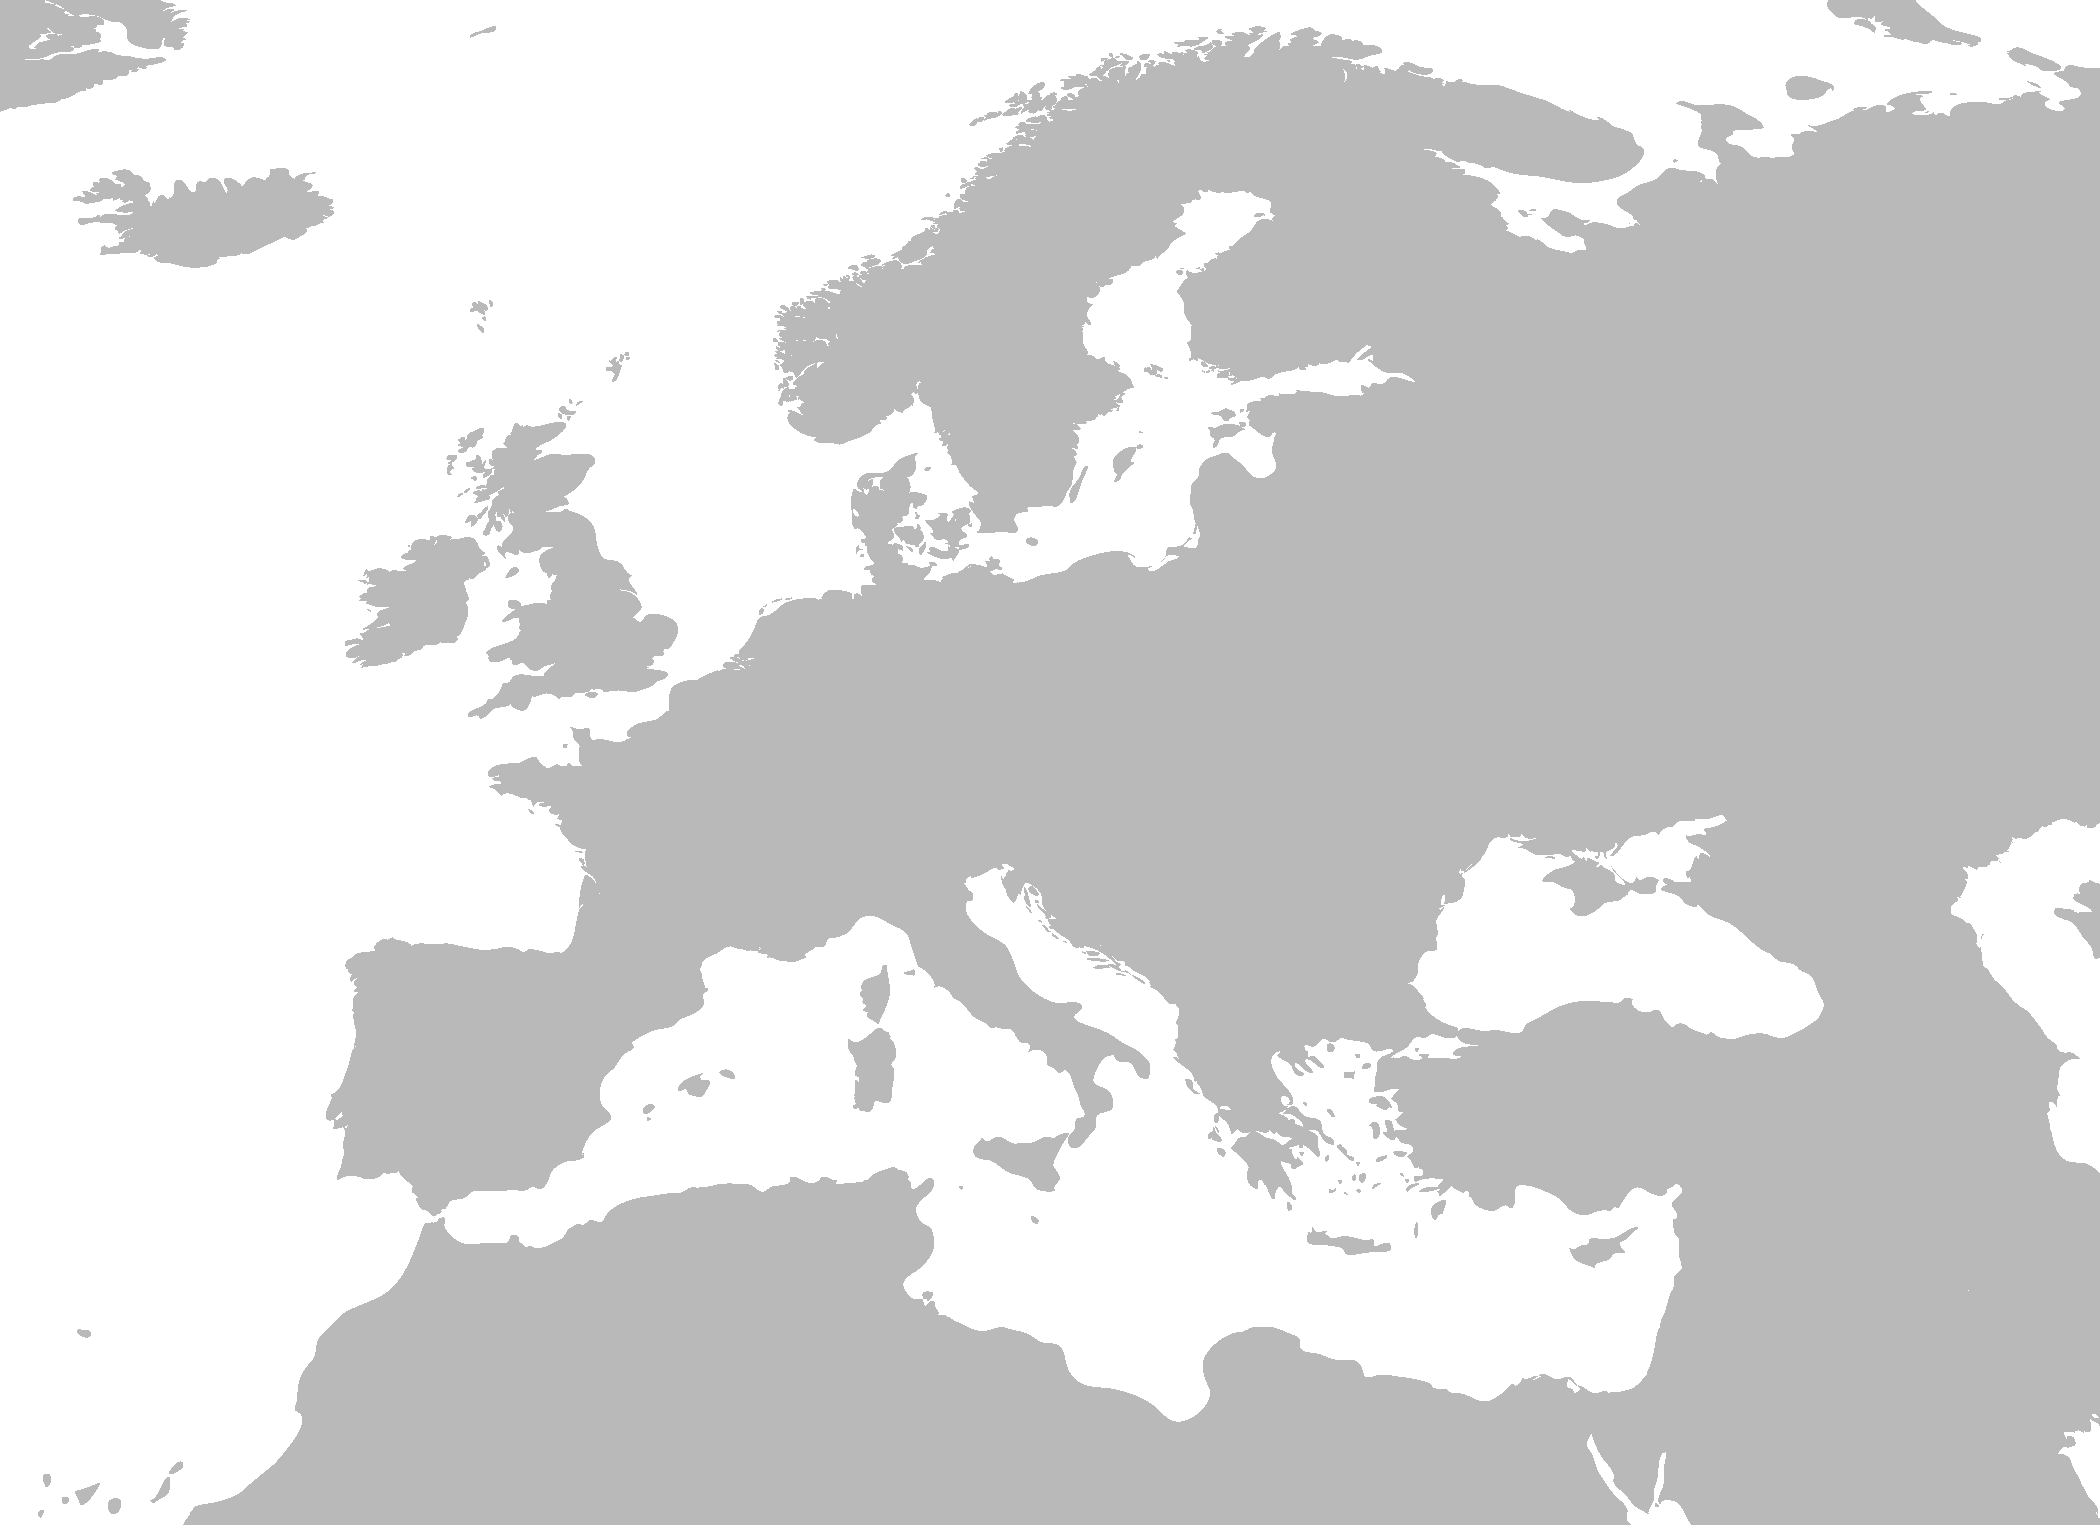 File:BlankMap-Europe-v3.png